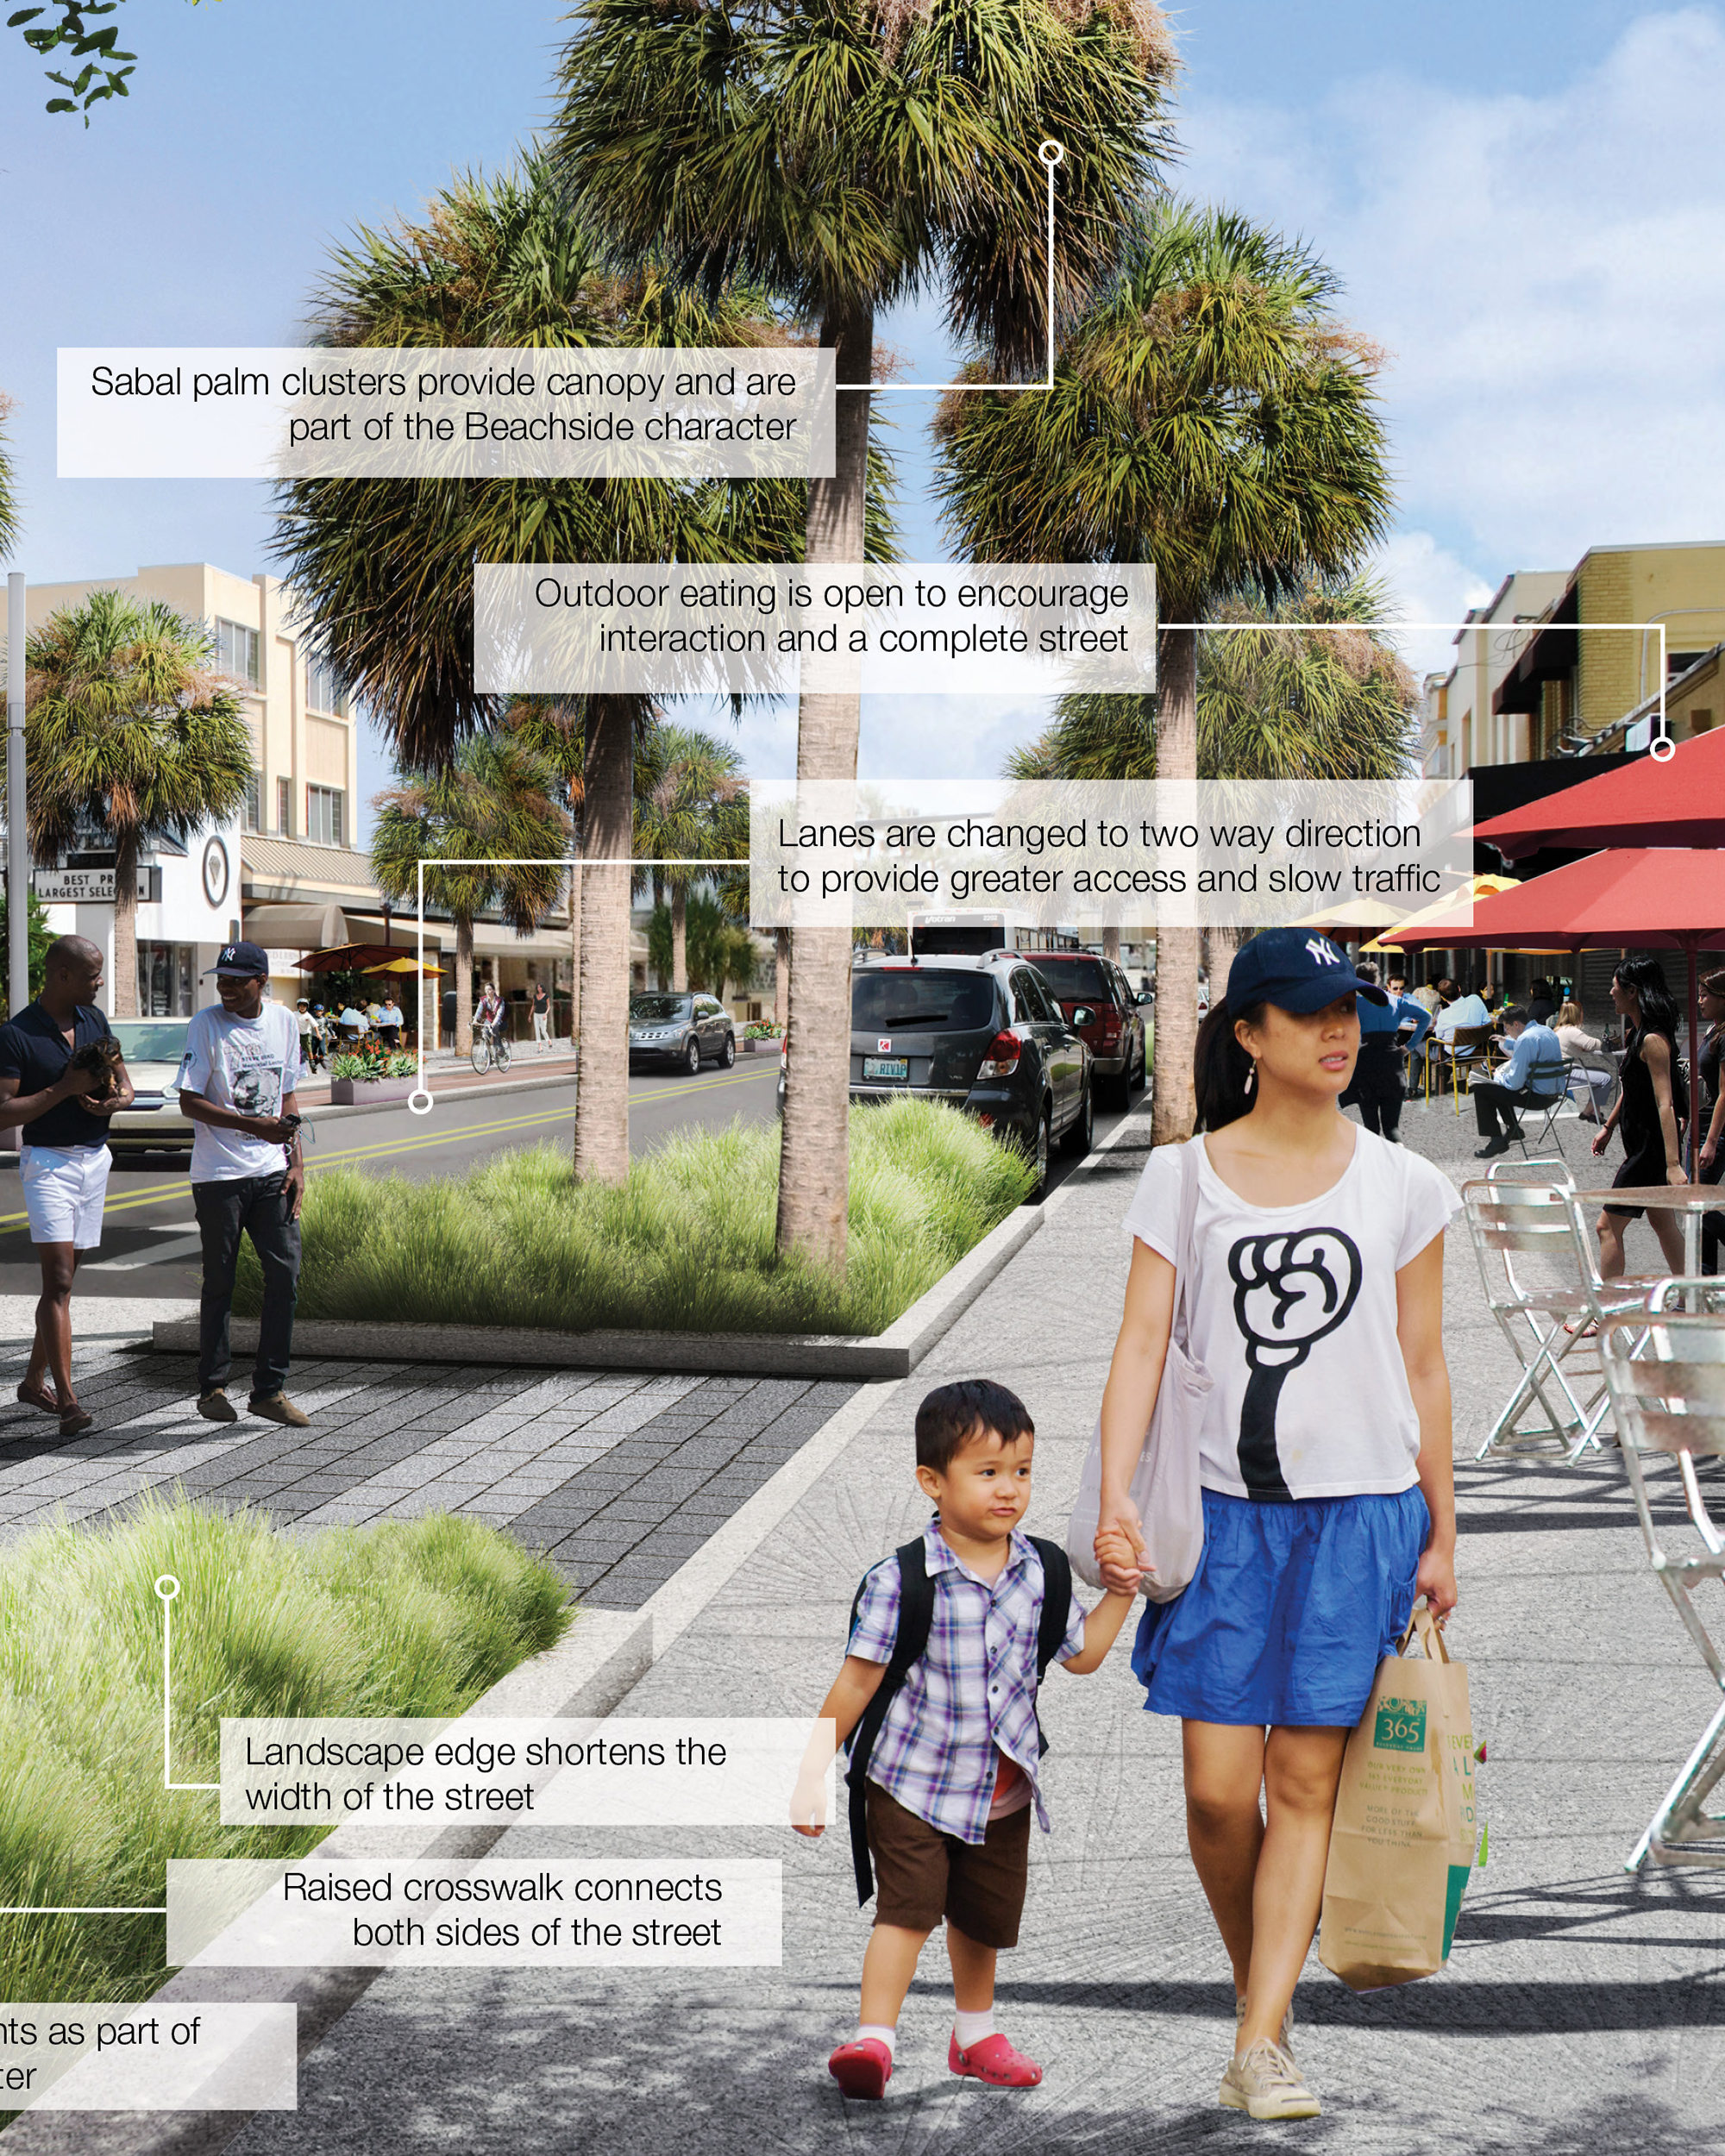 Daytona Beach transformation plan District Vision Plan  Daytona Beach, Florida